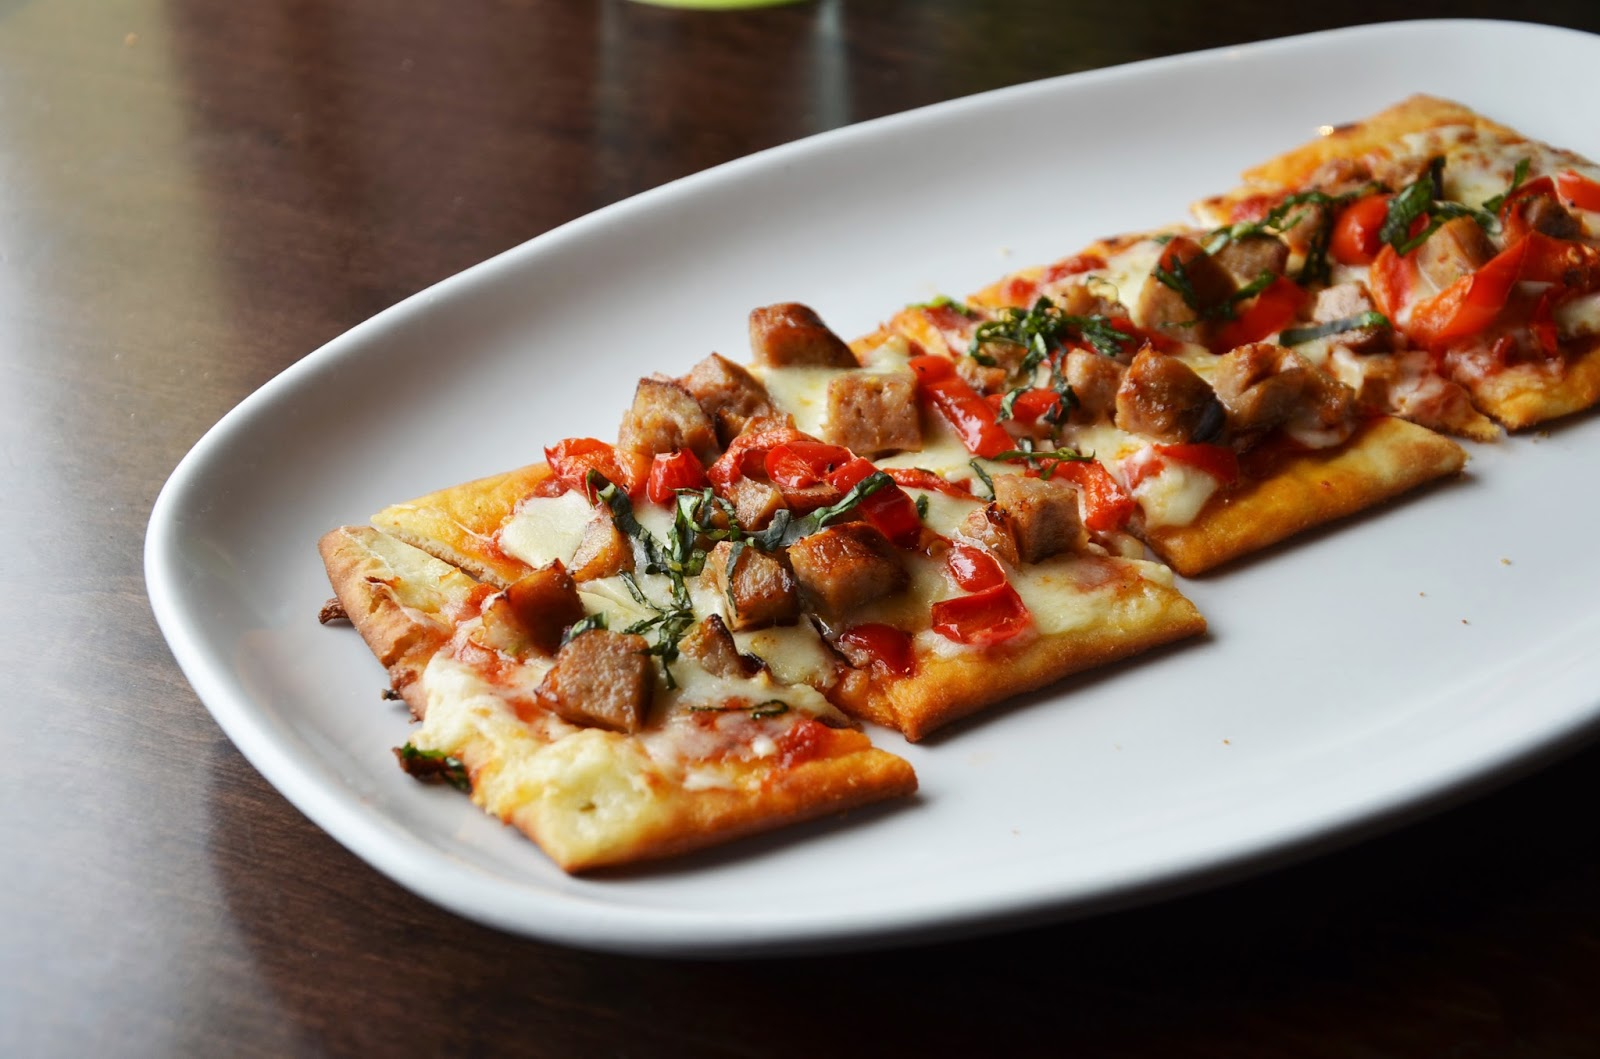 New Menu Items At Olive Garden Two Of A Kind Working On A Full House